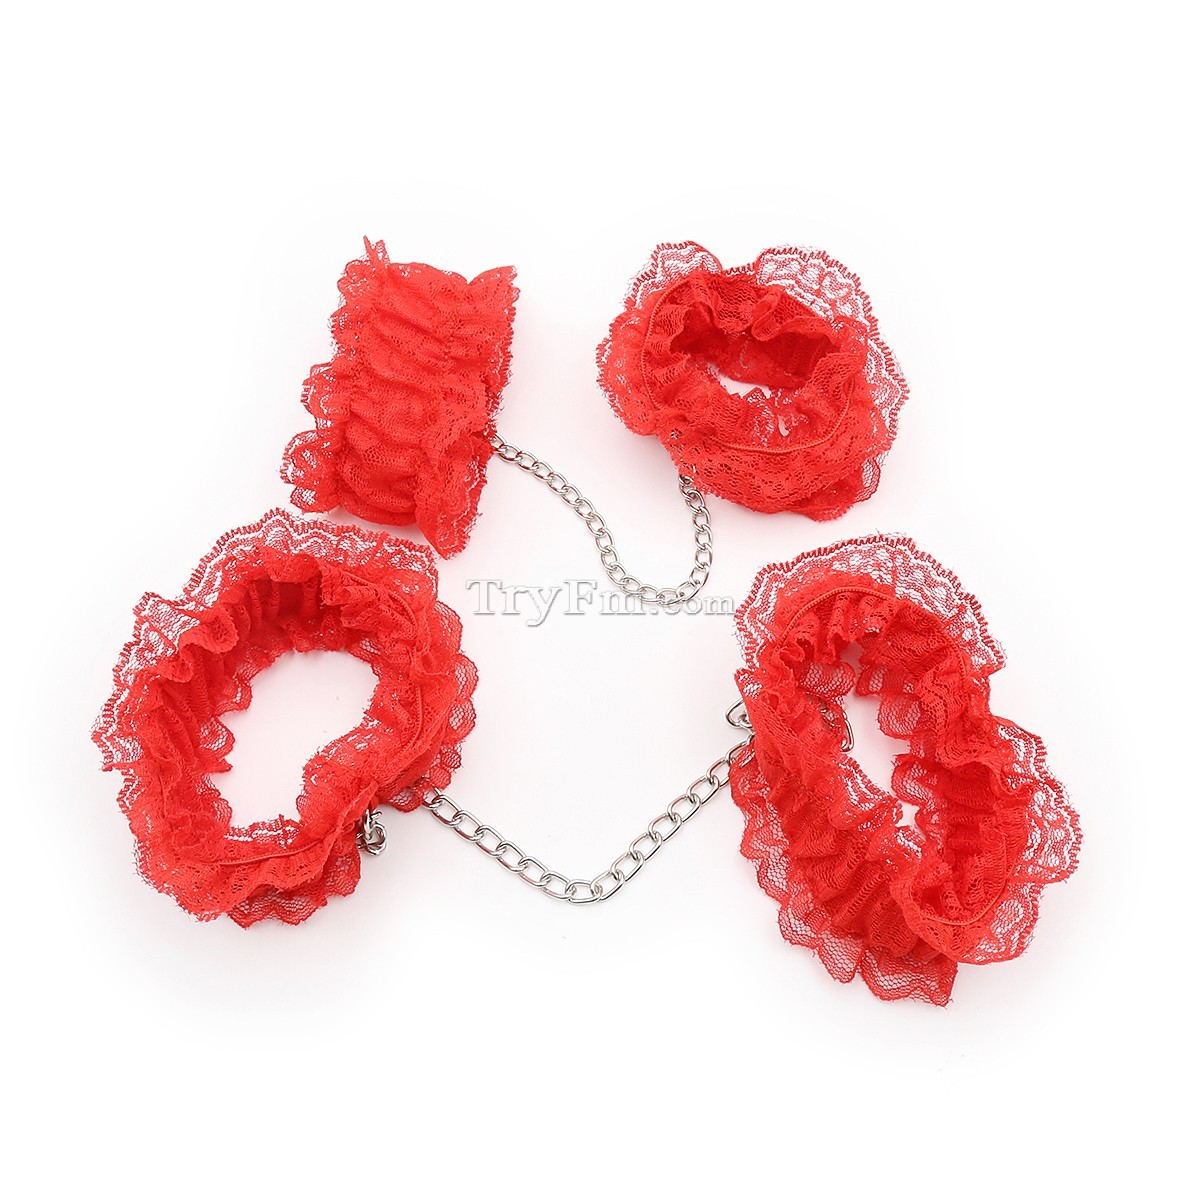 5-Red-Lace-Set16.jpg